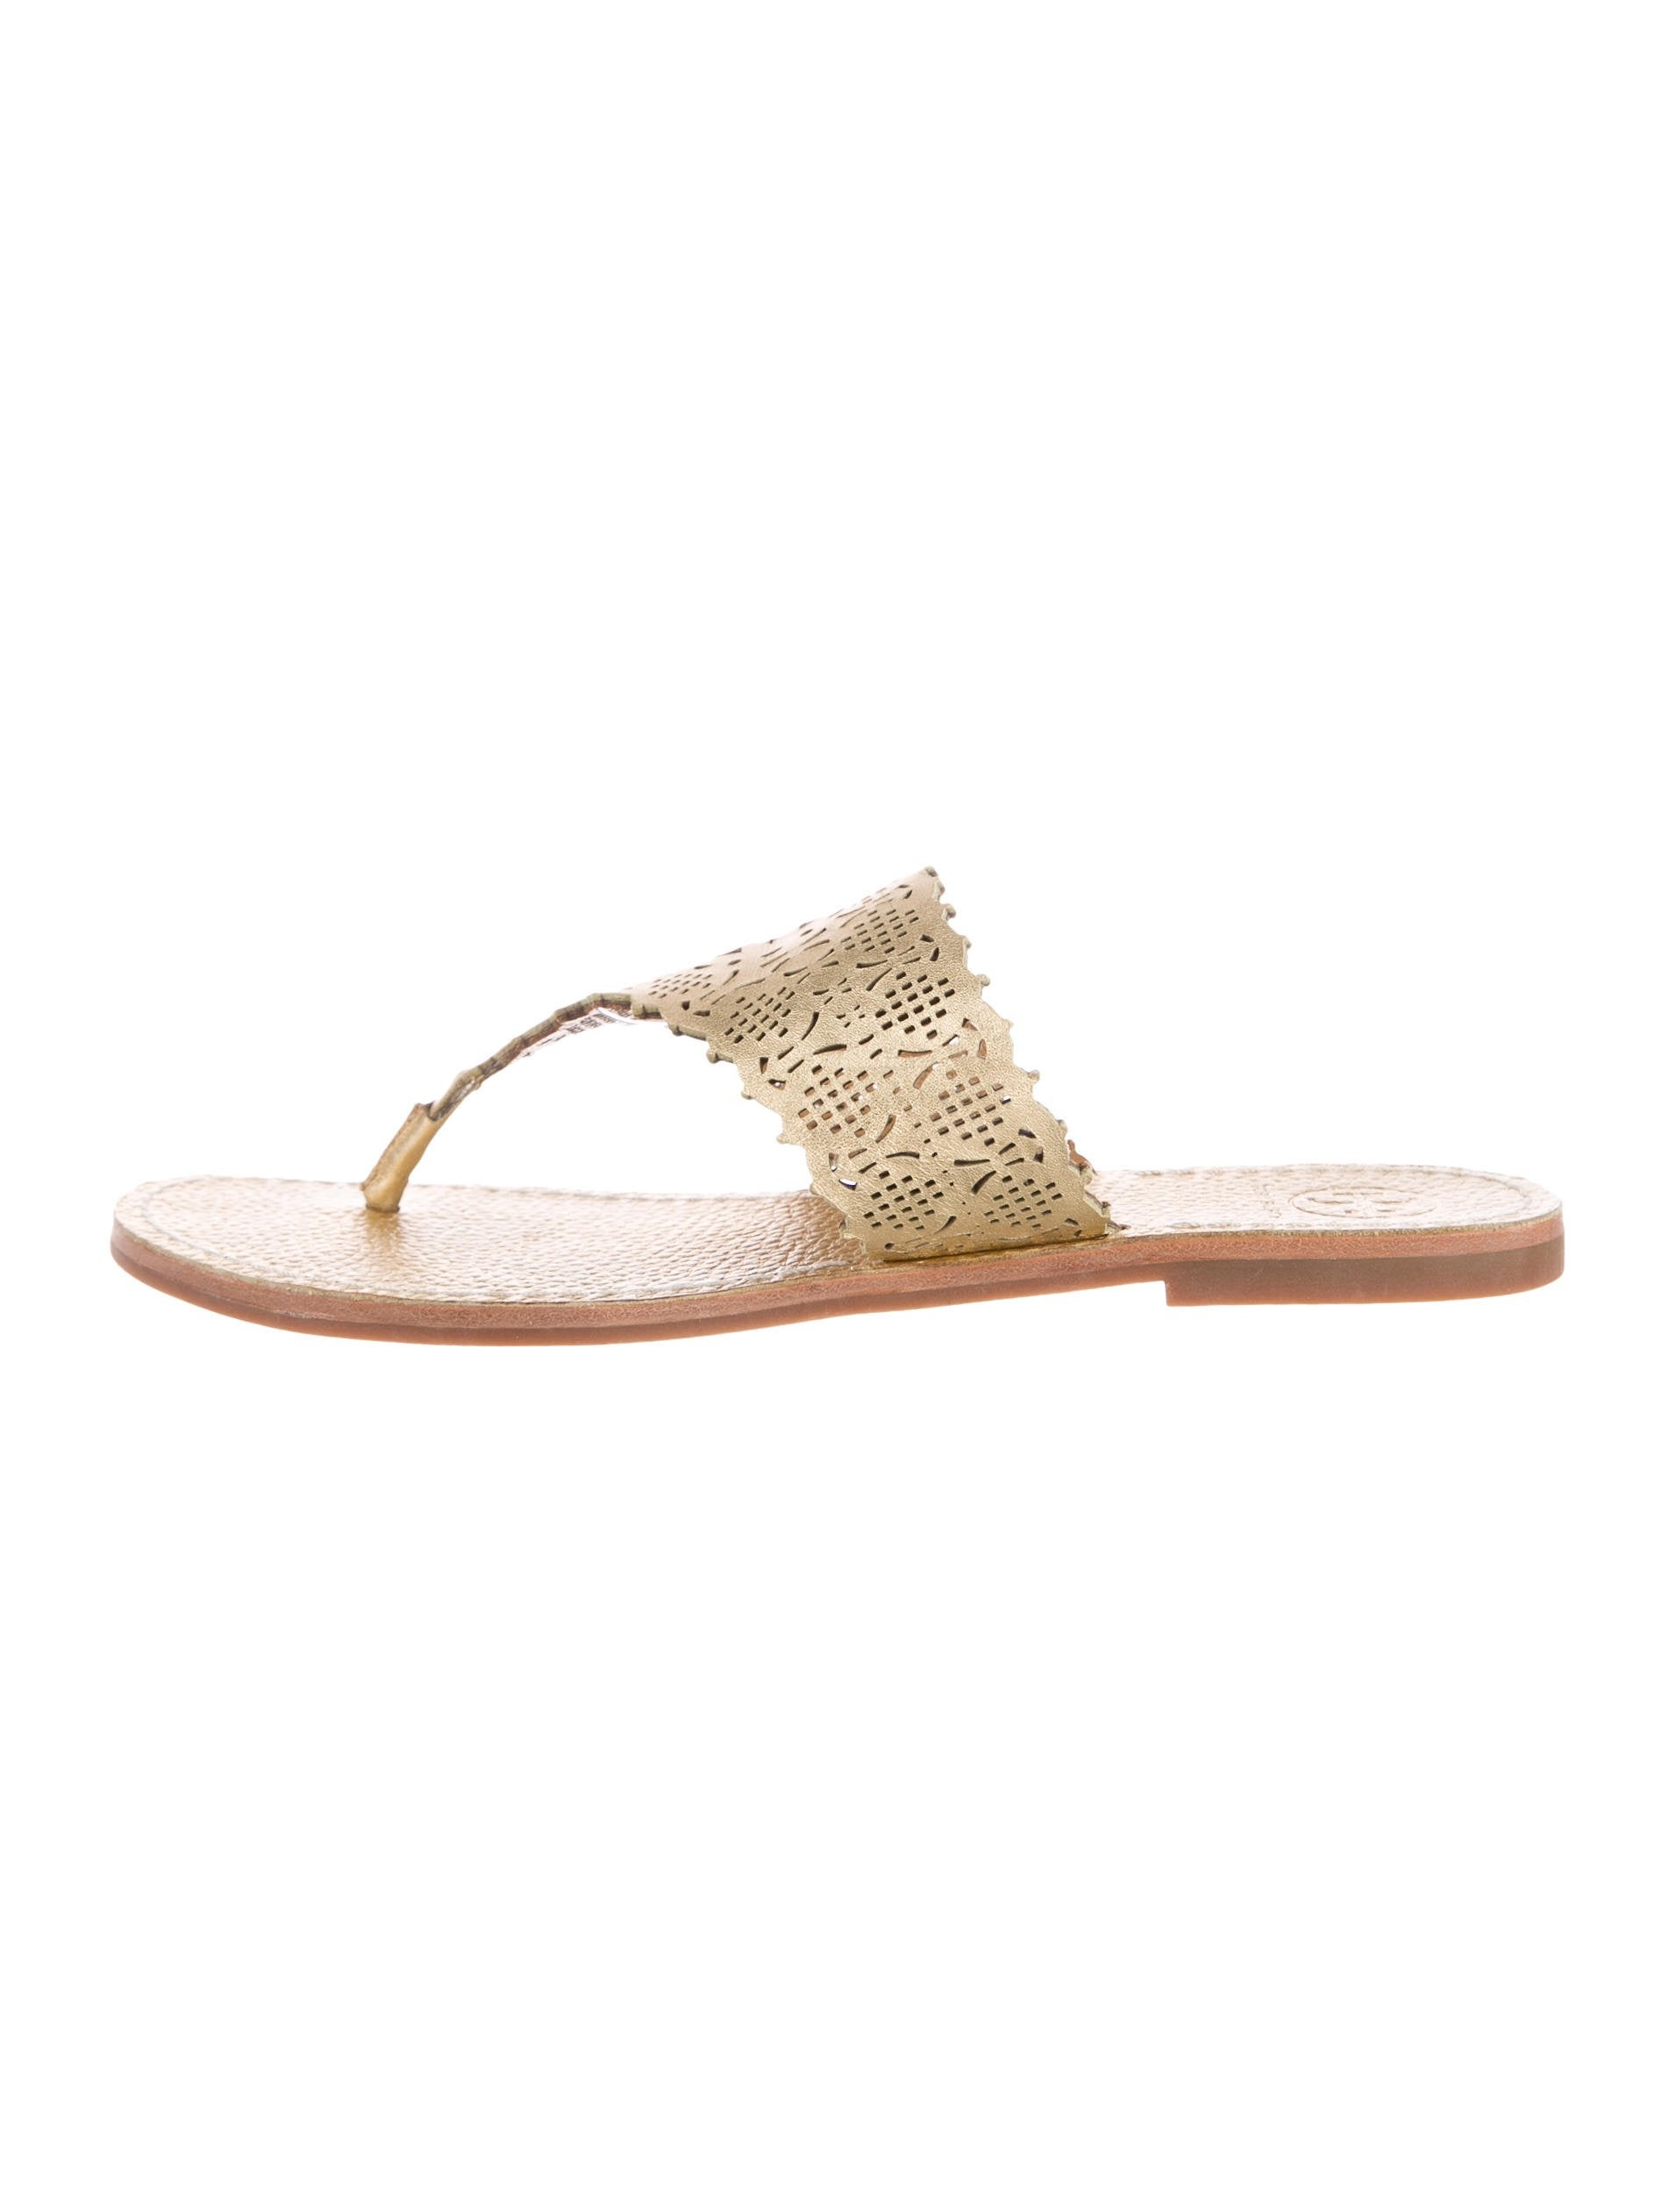 15668bc2fdc Tory Burch Roselle Laser Cut Thong Sandals - Shoes - WTO127908